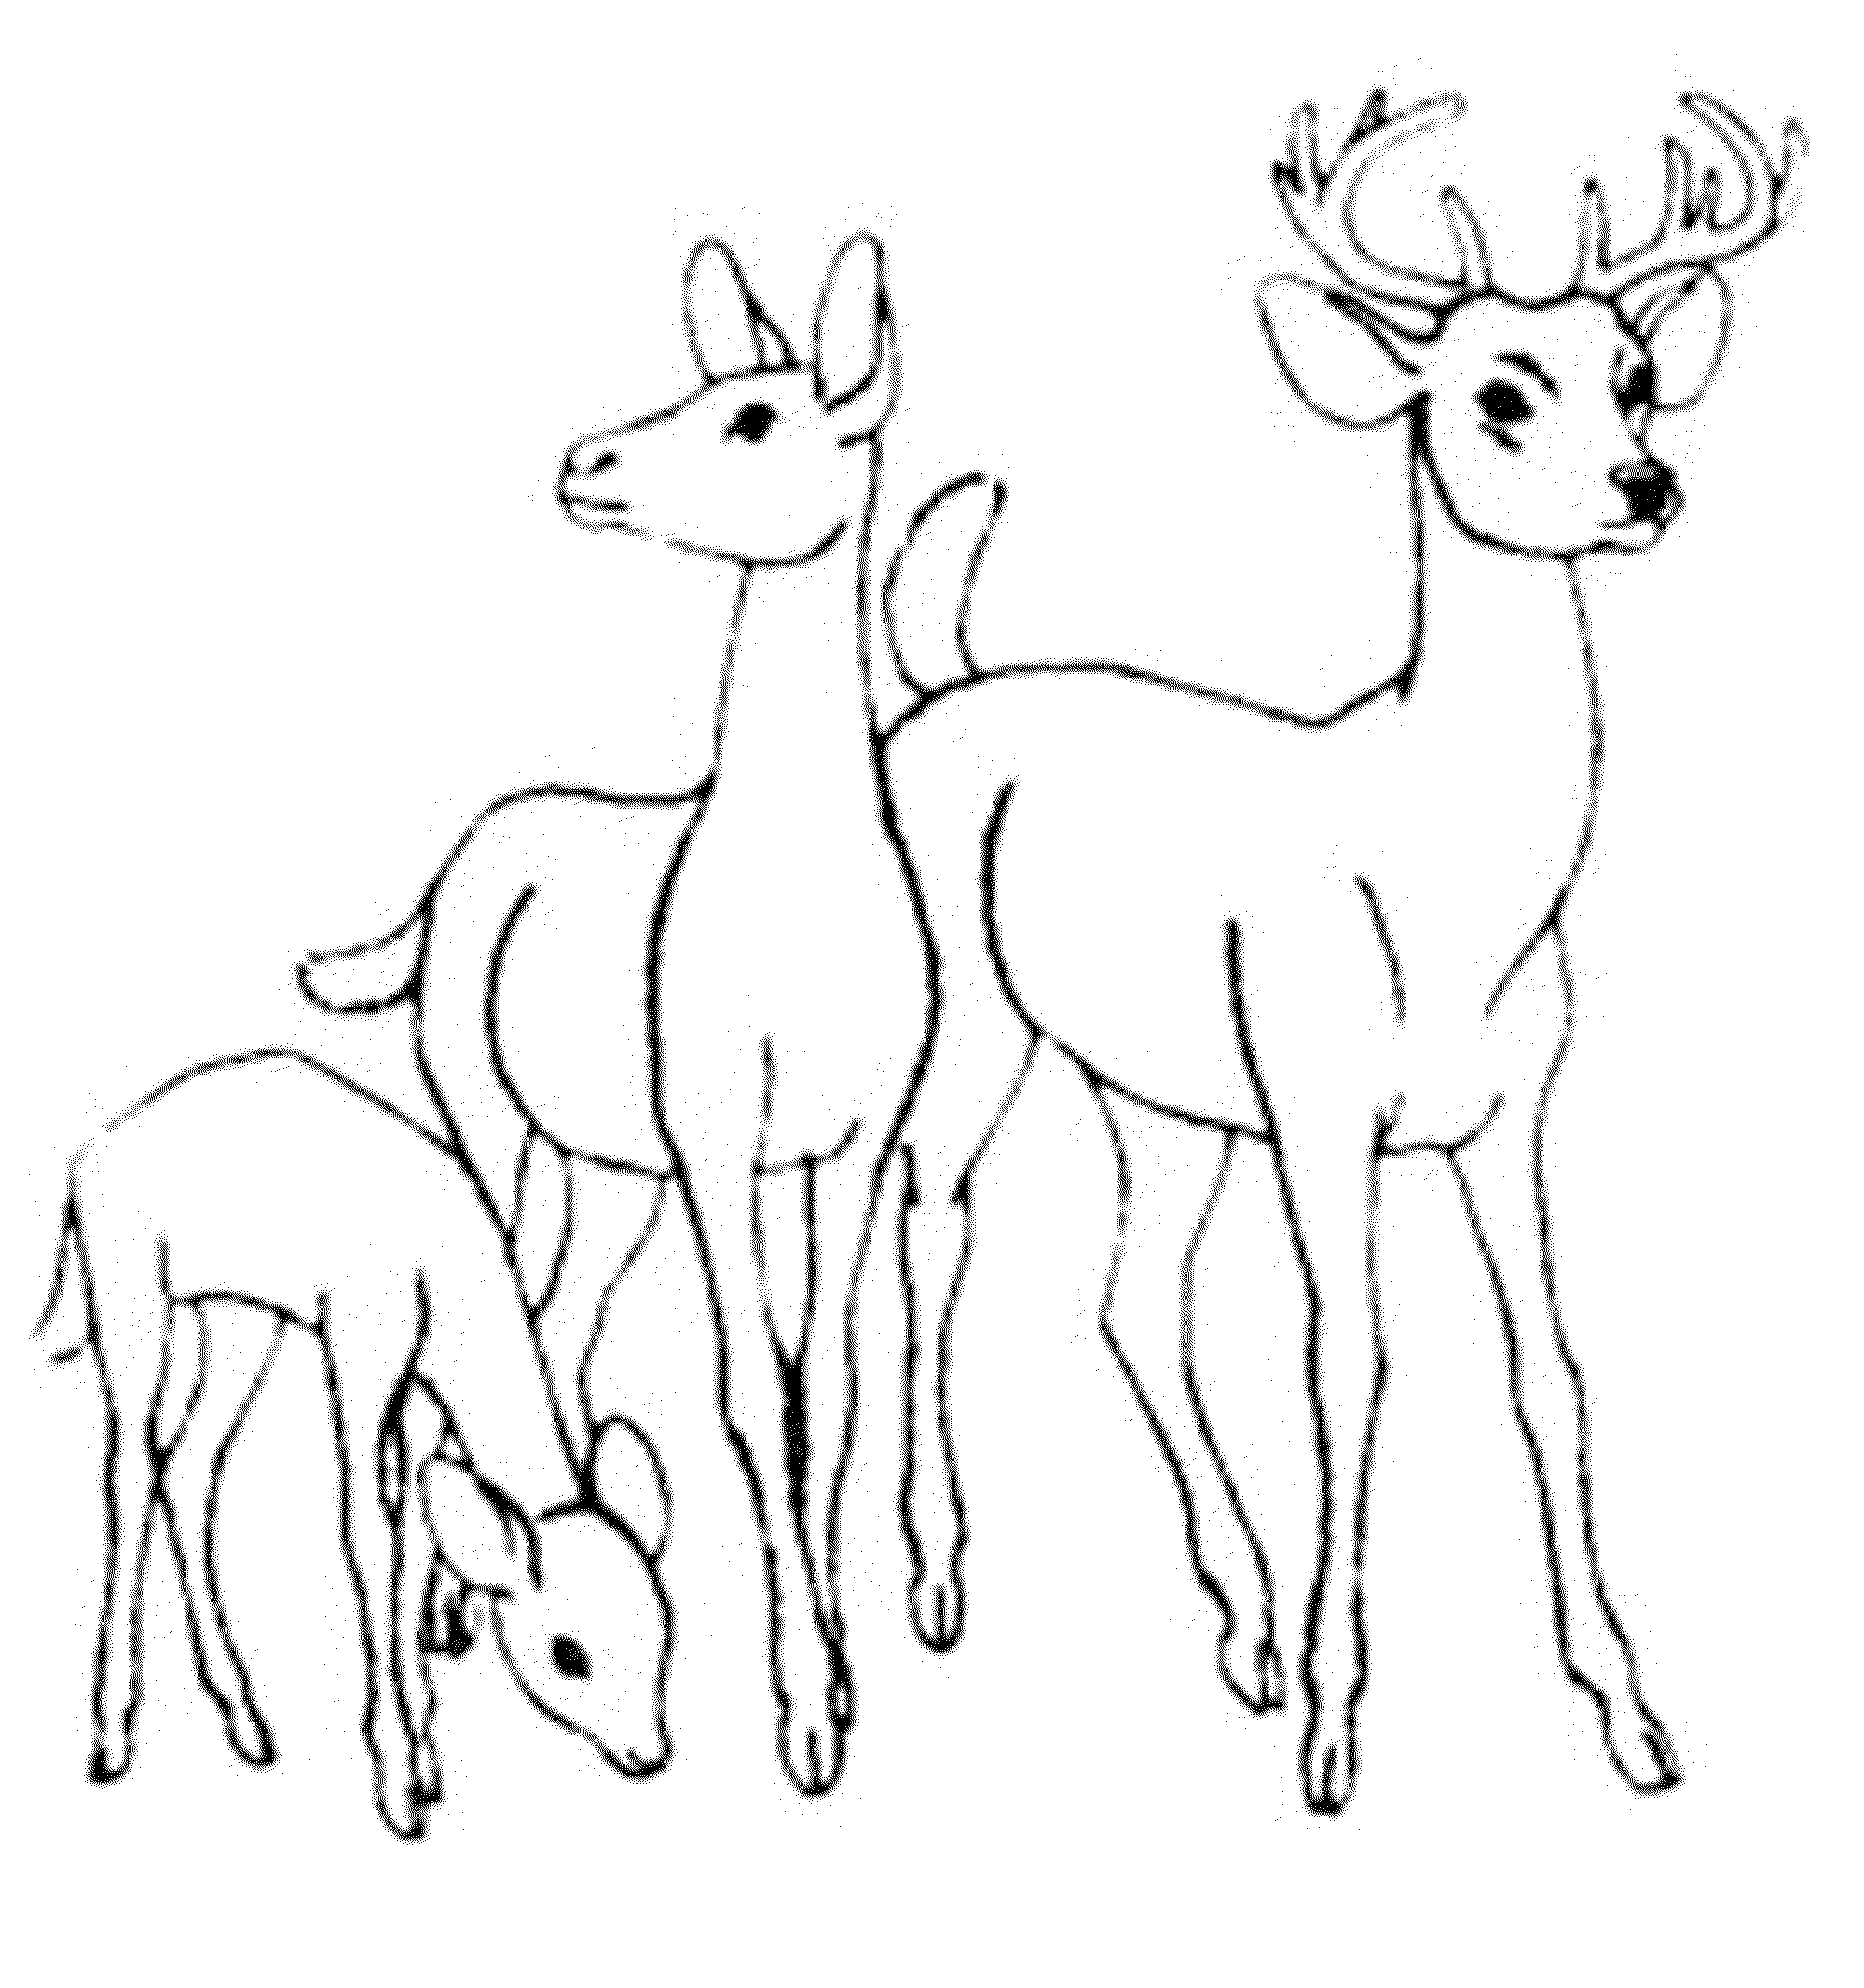 Ruminant Mammal Deer 20 Deer Coloring Pages